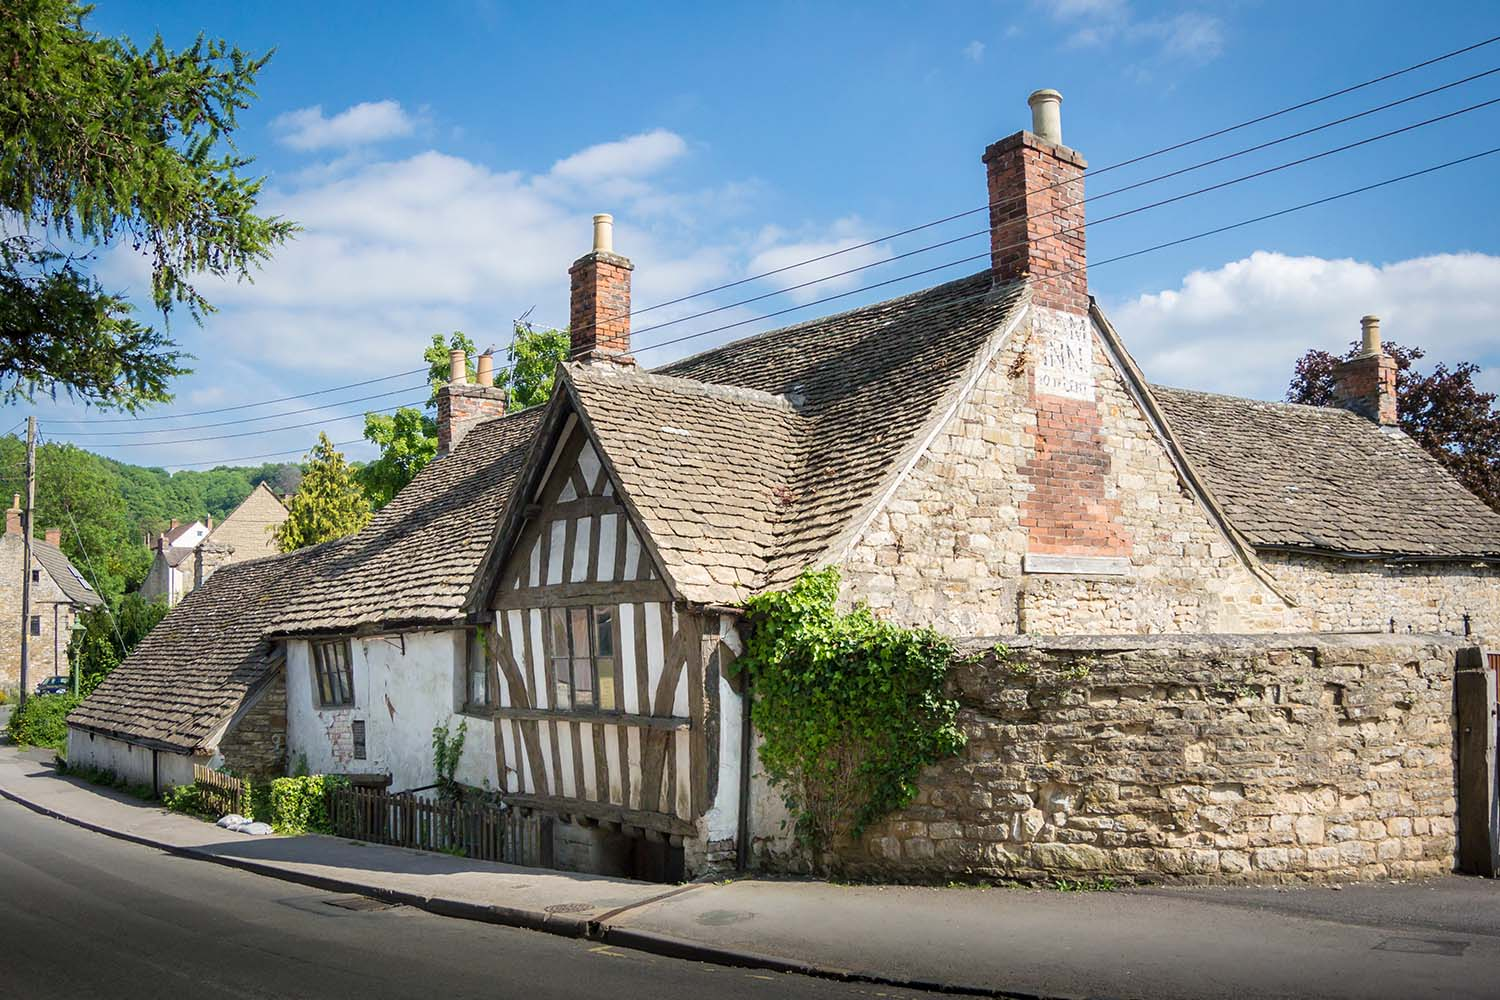 Ancient Ram Inn, former 12th century public house in the country, Wotton-under-Edge, Gloucestershire, UK.